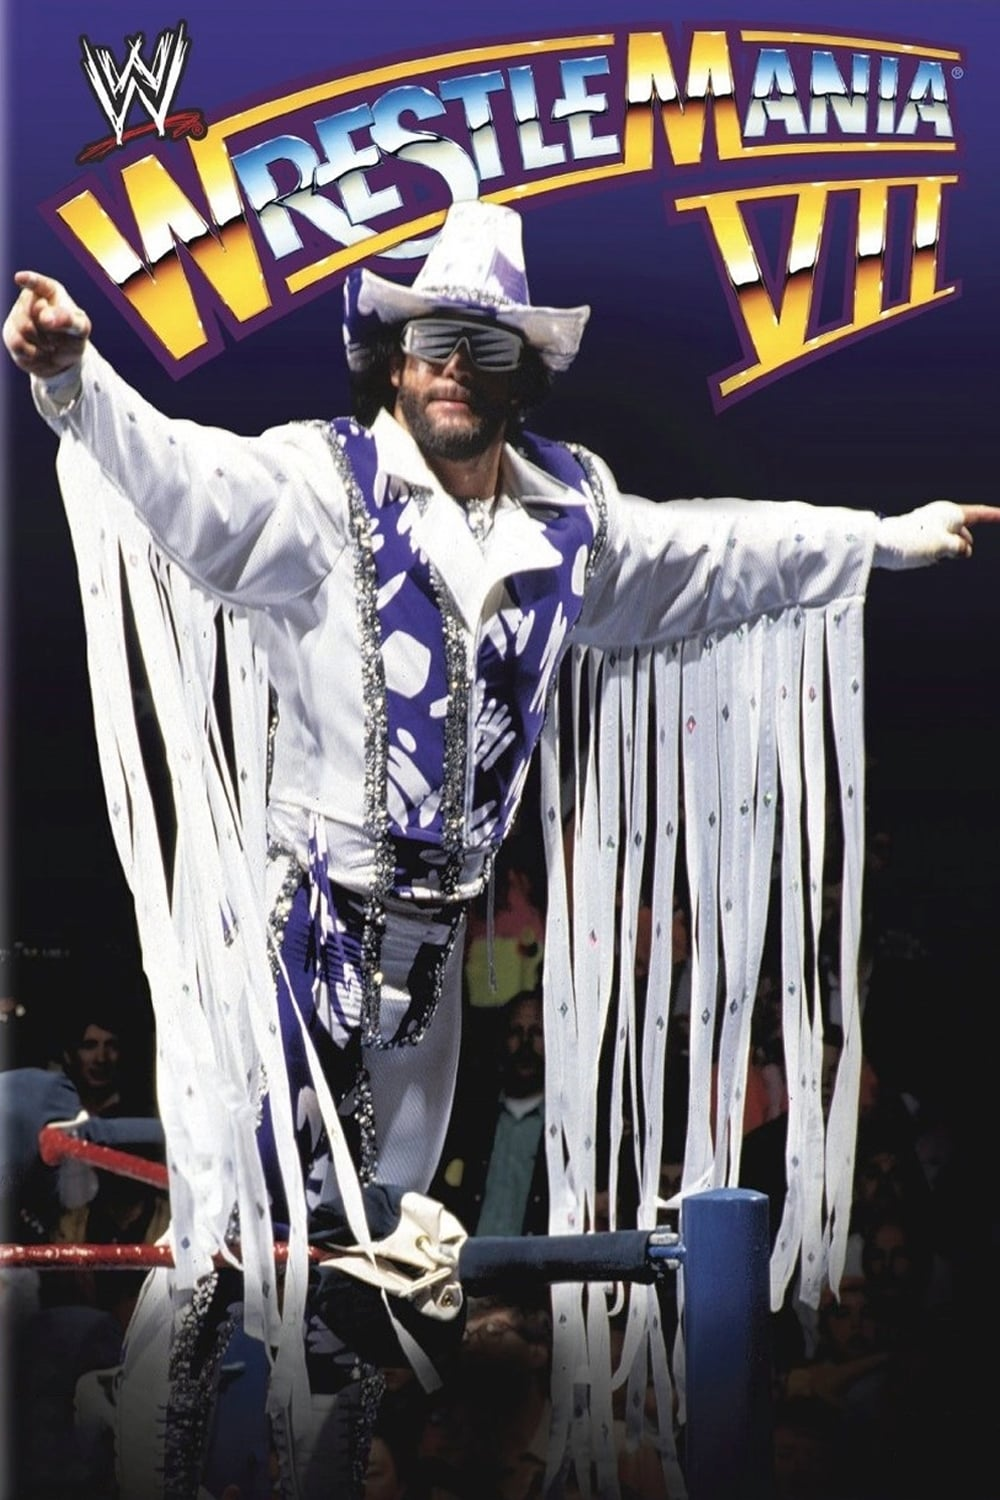 WWE WrestleMania VII (1991)